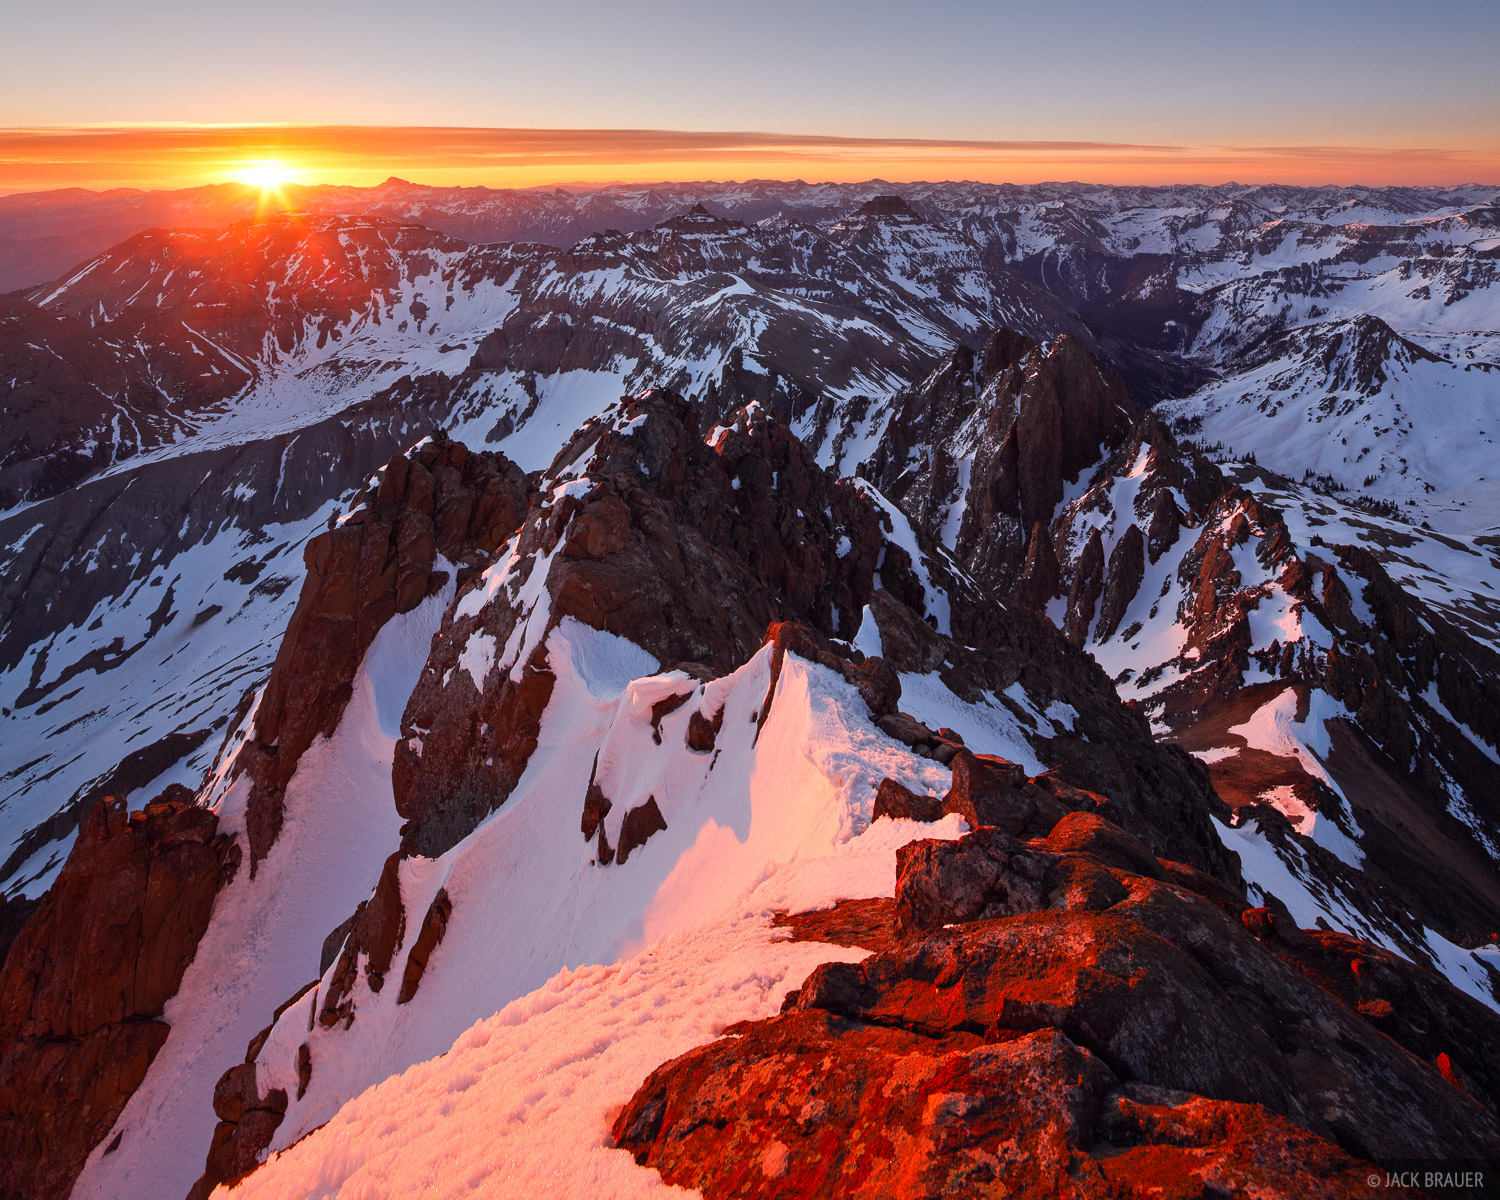 Mt. Sneffels, San Juan Mountains, Colorado, sunrise, summit, photo